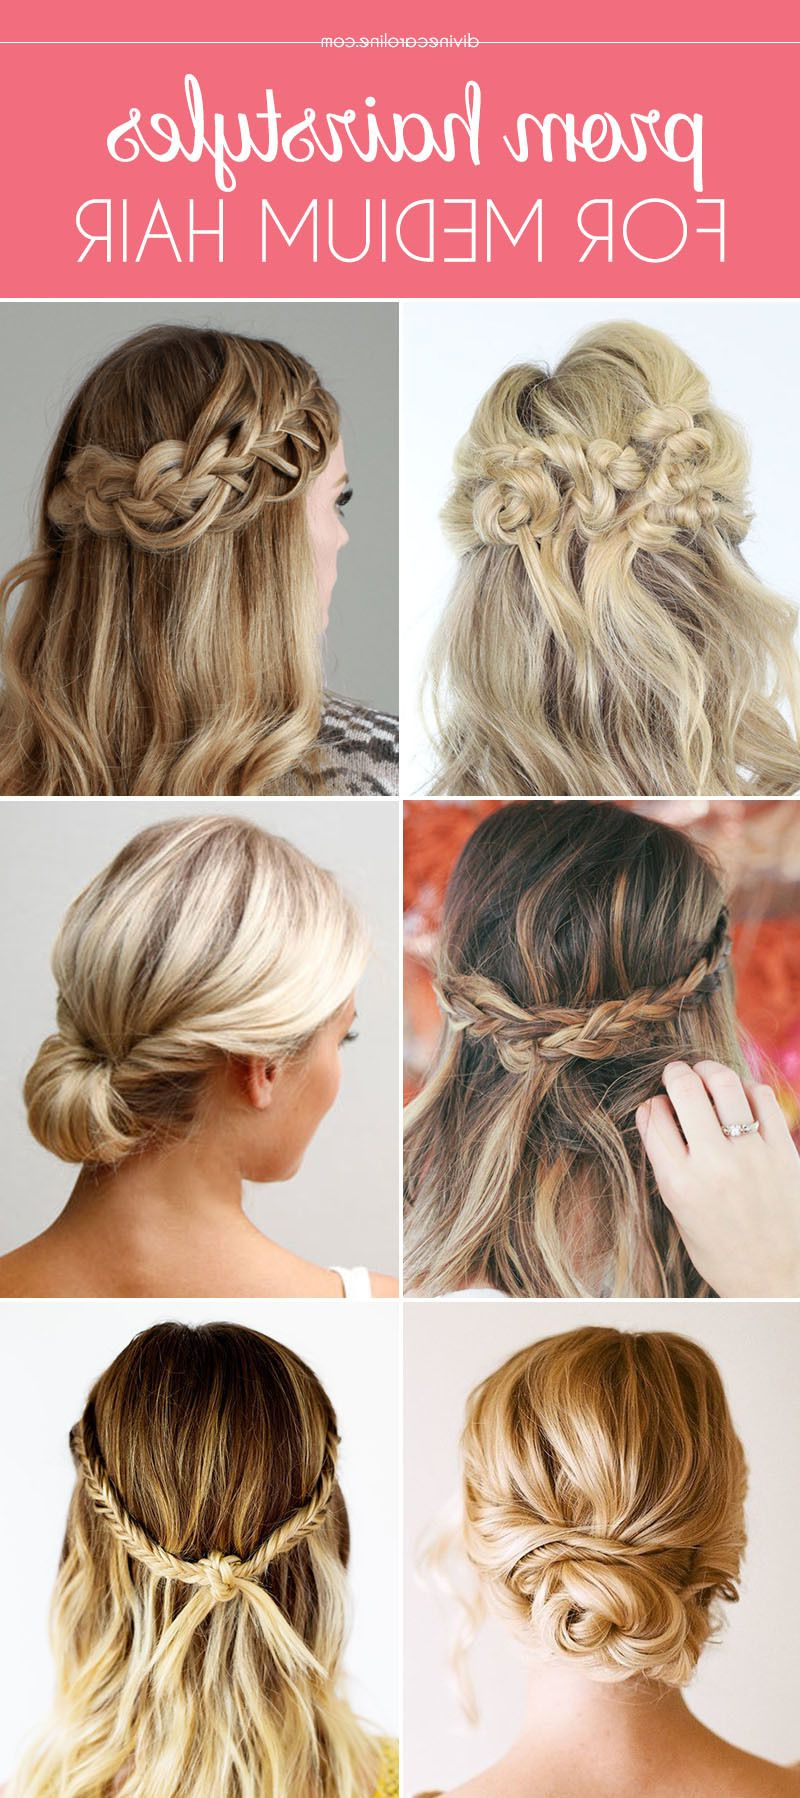 Our Favorite Prom Hairstyles For Medium Length Hair (View 14 of 20)